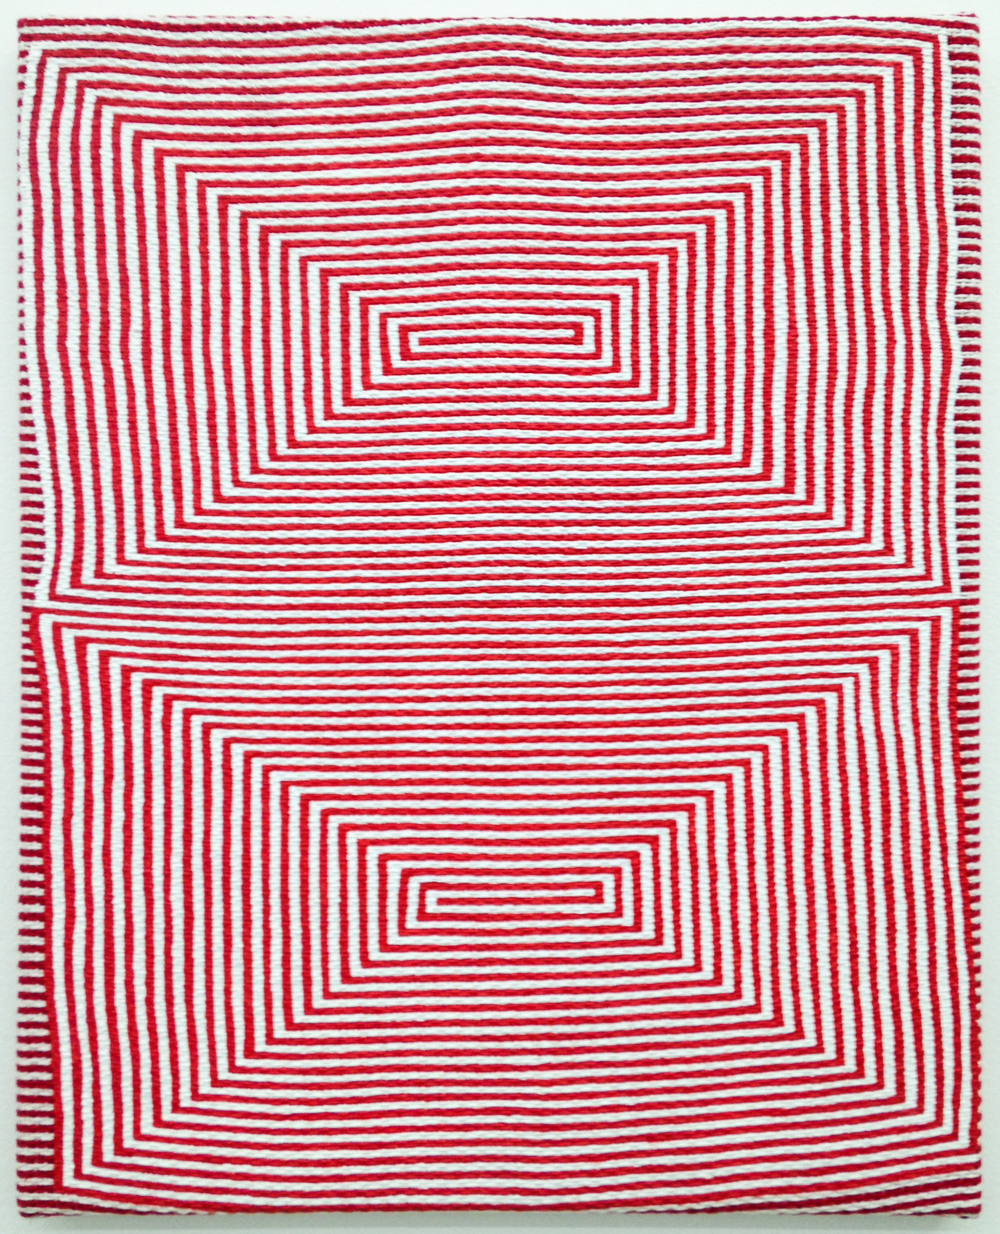 Bittman_05_Untitled_2013_acrylic on handwoven textile_20x16.jpg